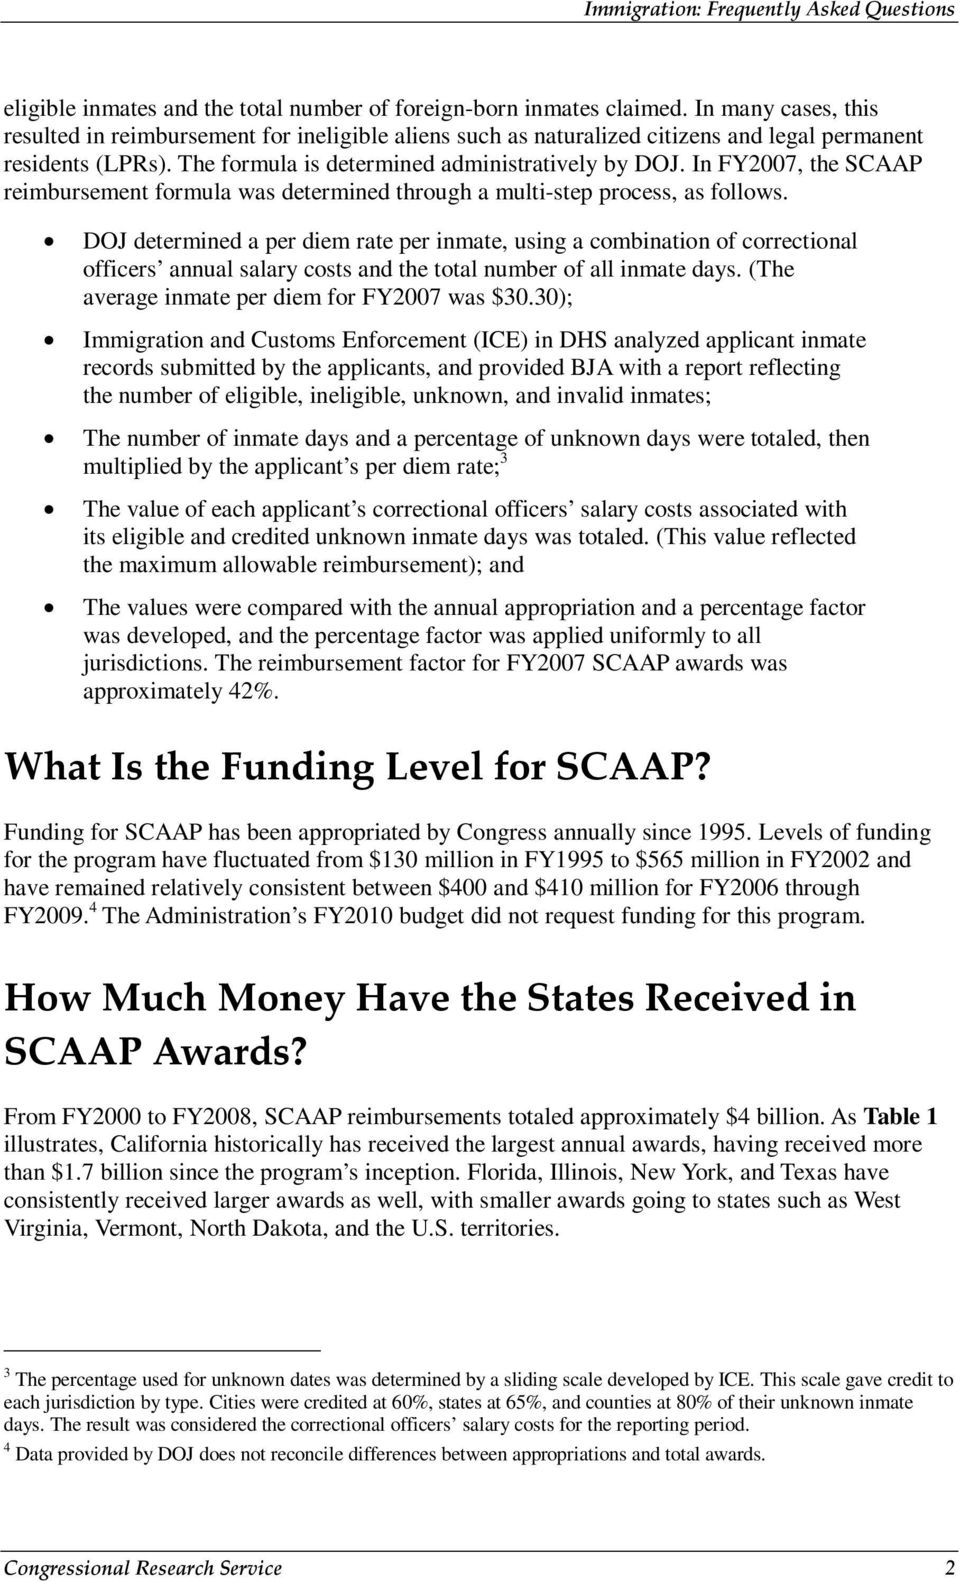 In FY2007, the SCAAP reimbursement formula was determined through a multi-step process, as follows.